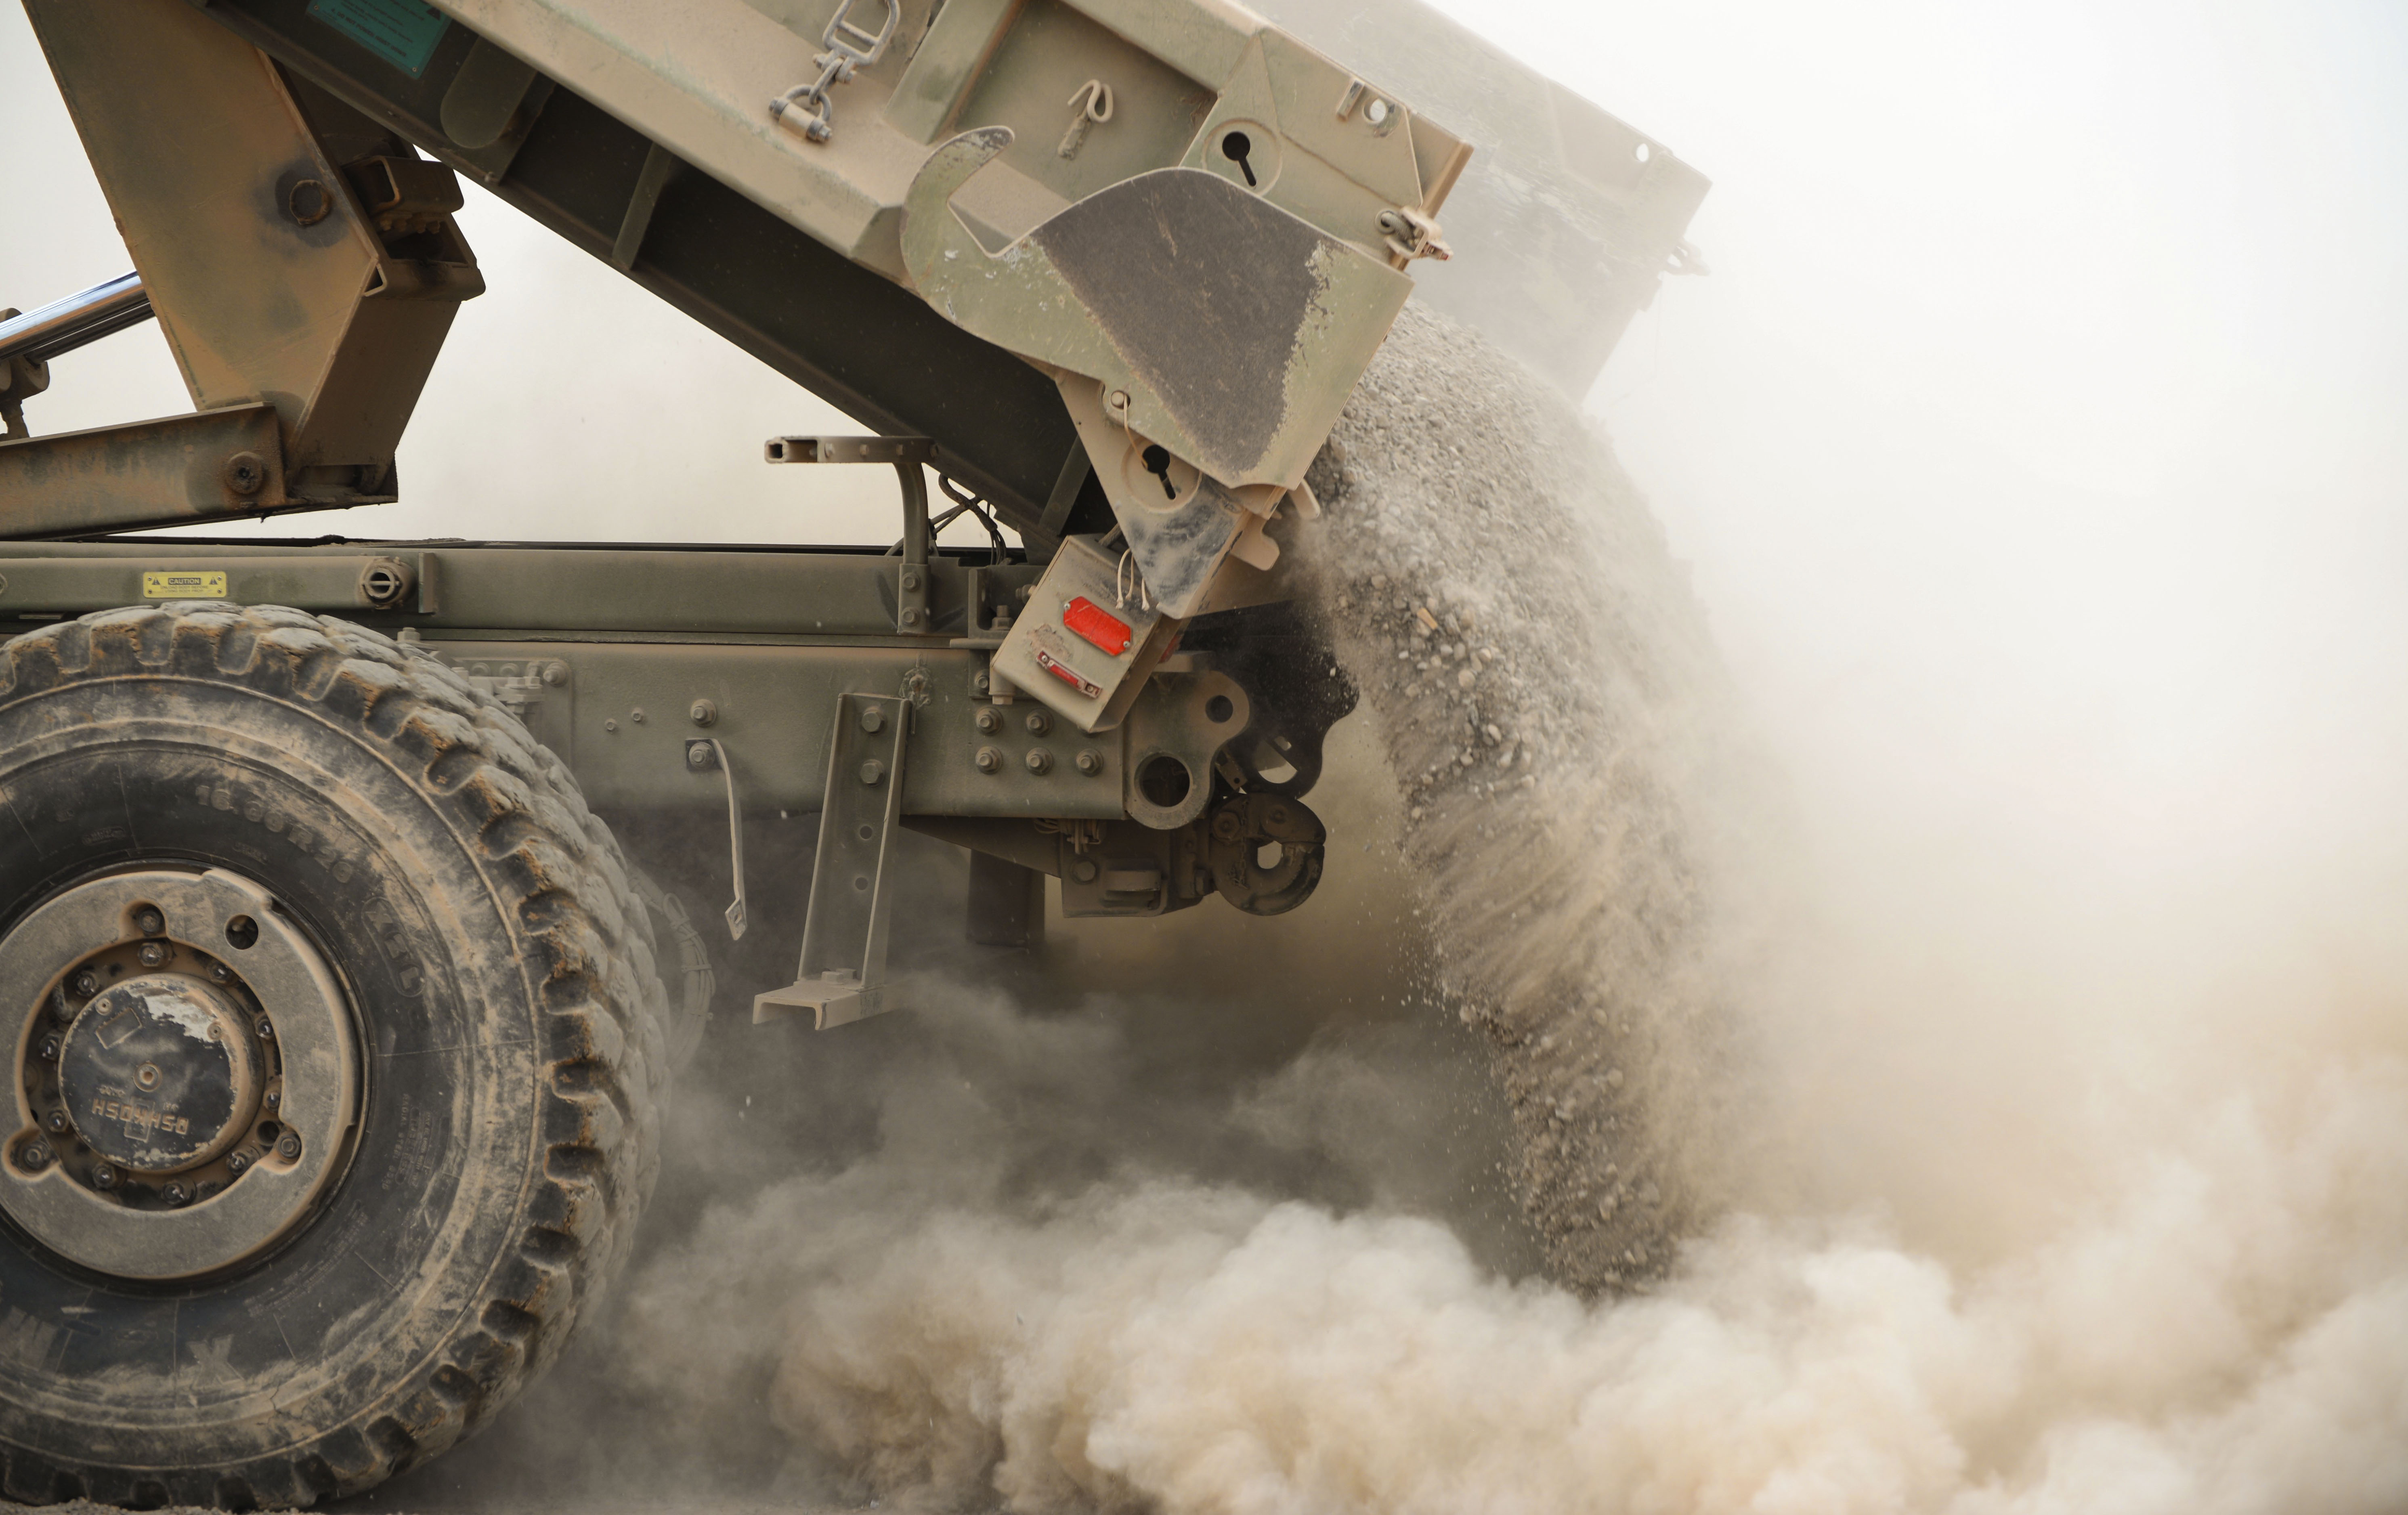 A dump truck releases gravel onto the ground to further construction of a parking pad at a Djibouti Airfield, July 28, 2016. Logistical delays, such as gravel delivery, occasionally delayed construction, but the Seabees completed the project ahead of schedule. (U.S. Air Force photo by Staff Sgt. Benjamin Raughton/Released)